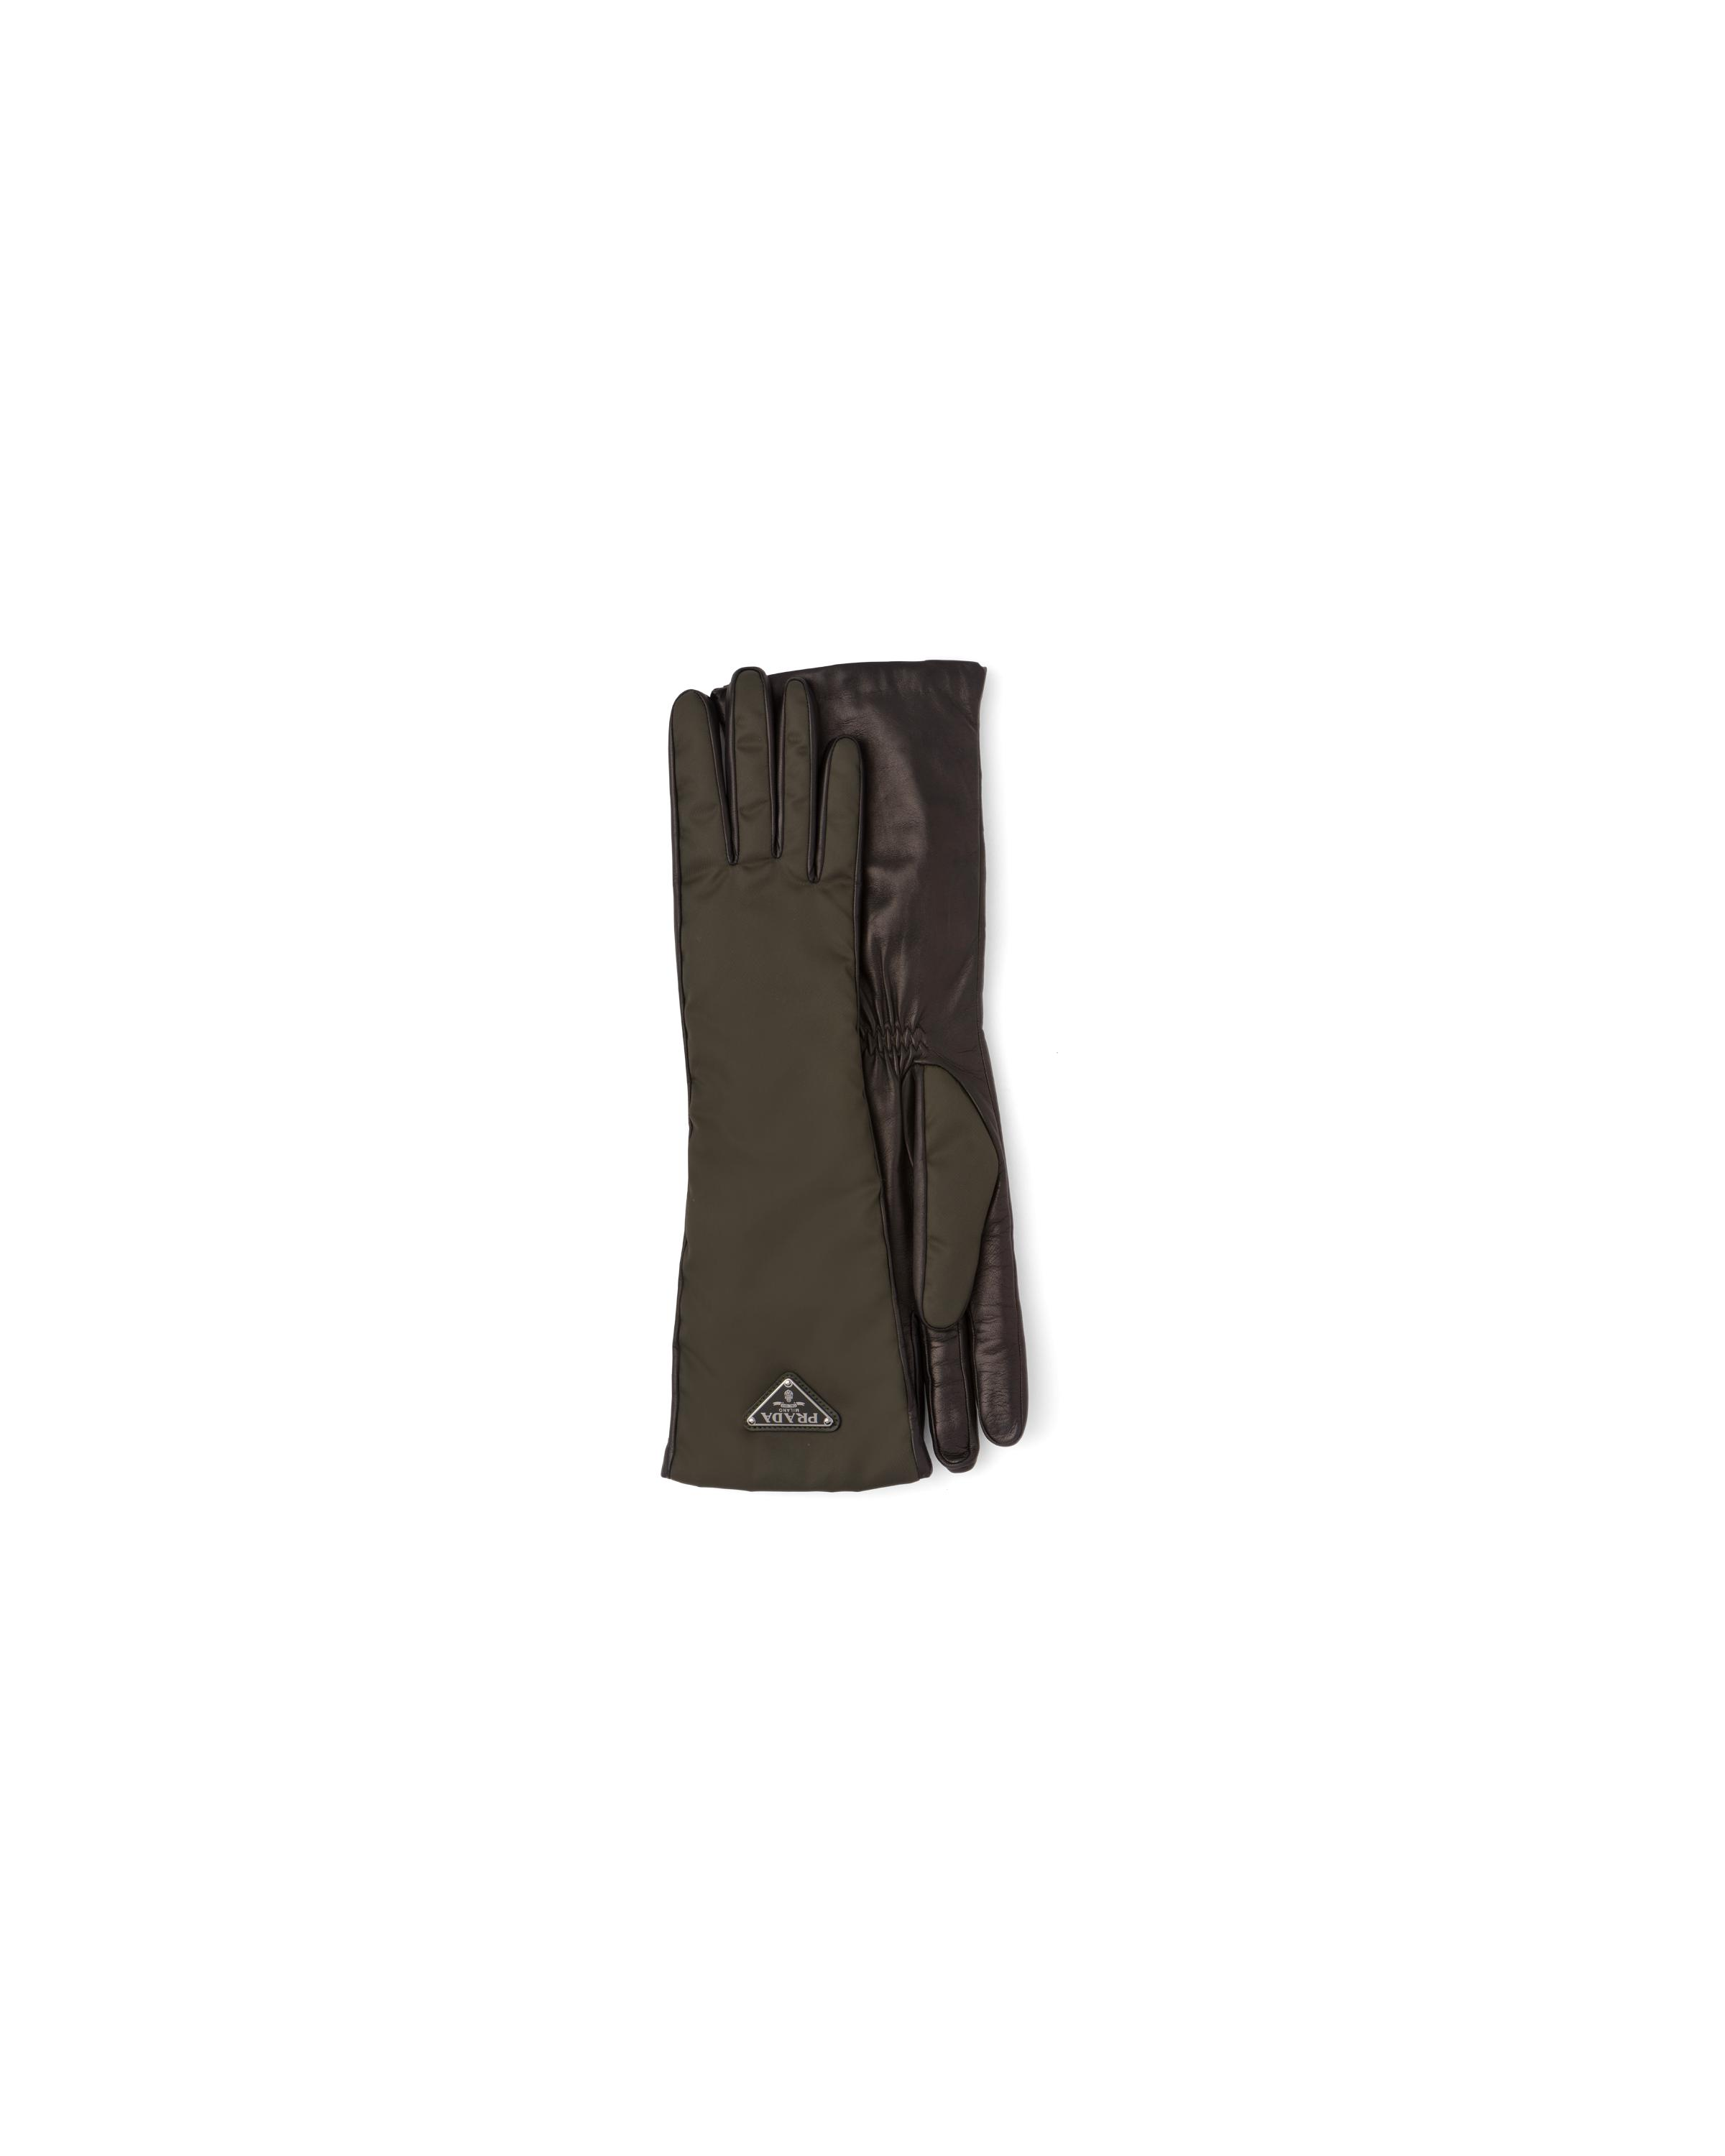 Nylon And Nappa Leather Gloves Women Camouflage/black 3